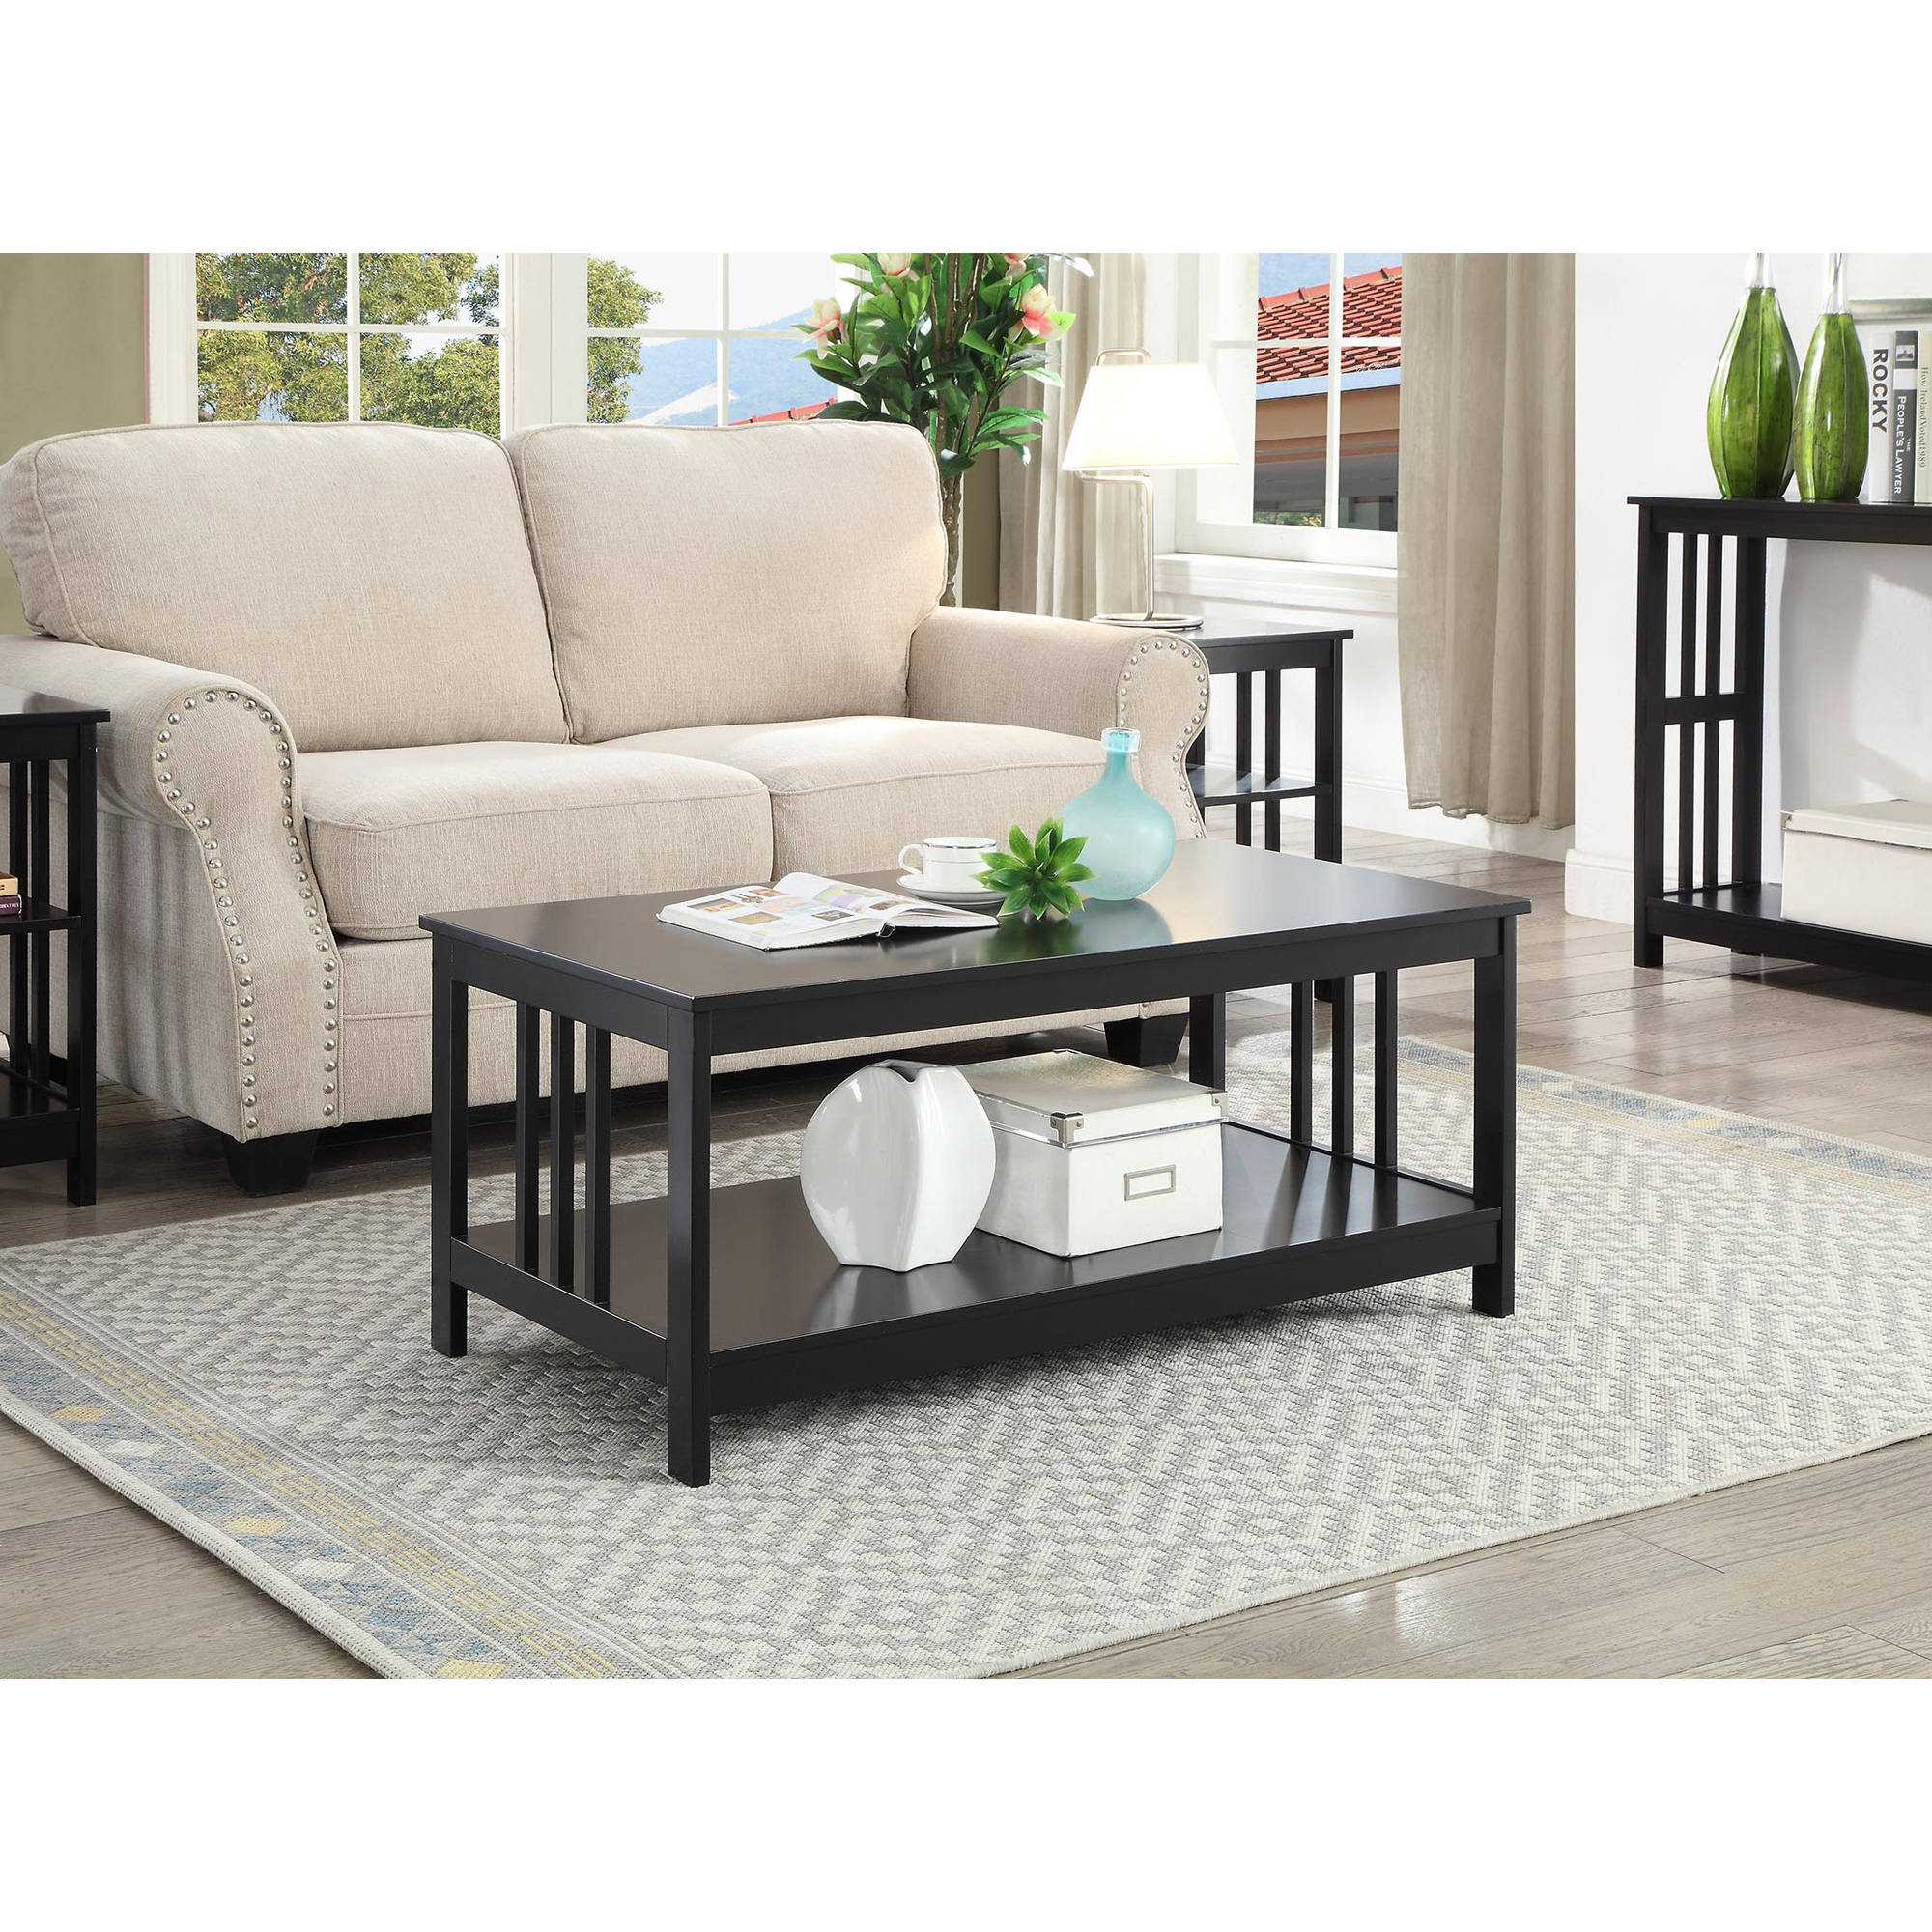 Convenience Concepts Mission Coffee Table, Multiple Colors by Convenience Concepts